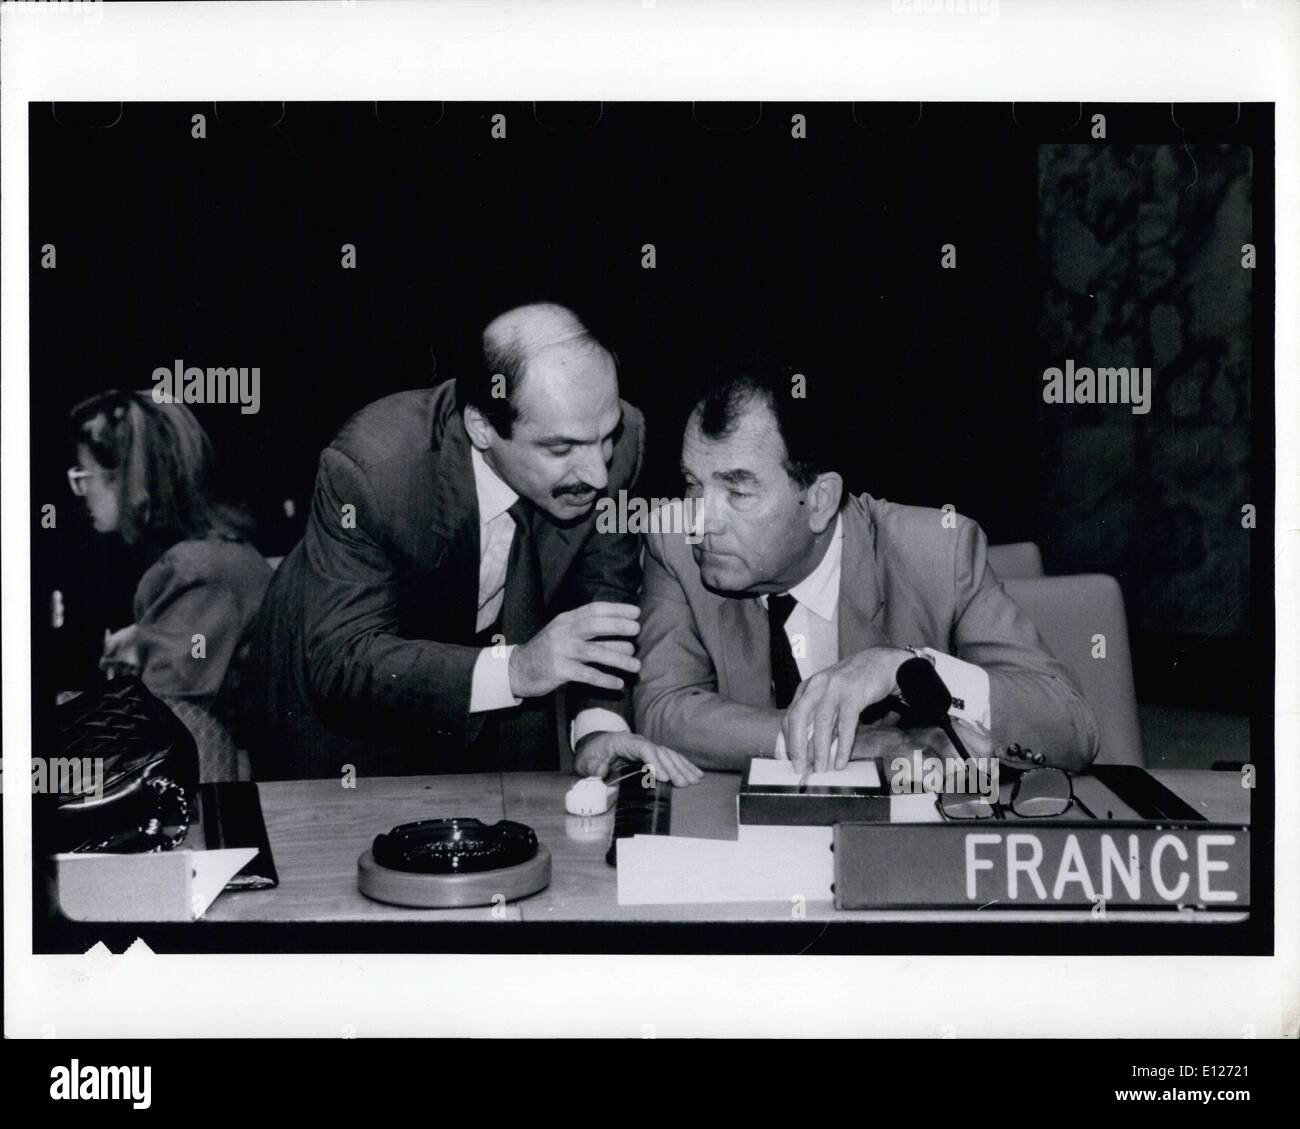 Aug. 08, 1990 - United Nations: Kuwaiti permanent representative Mohammad A. Abulhasan left and France's permanentStock Photo